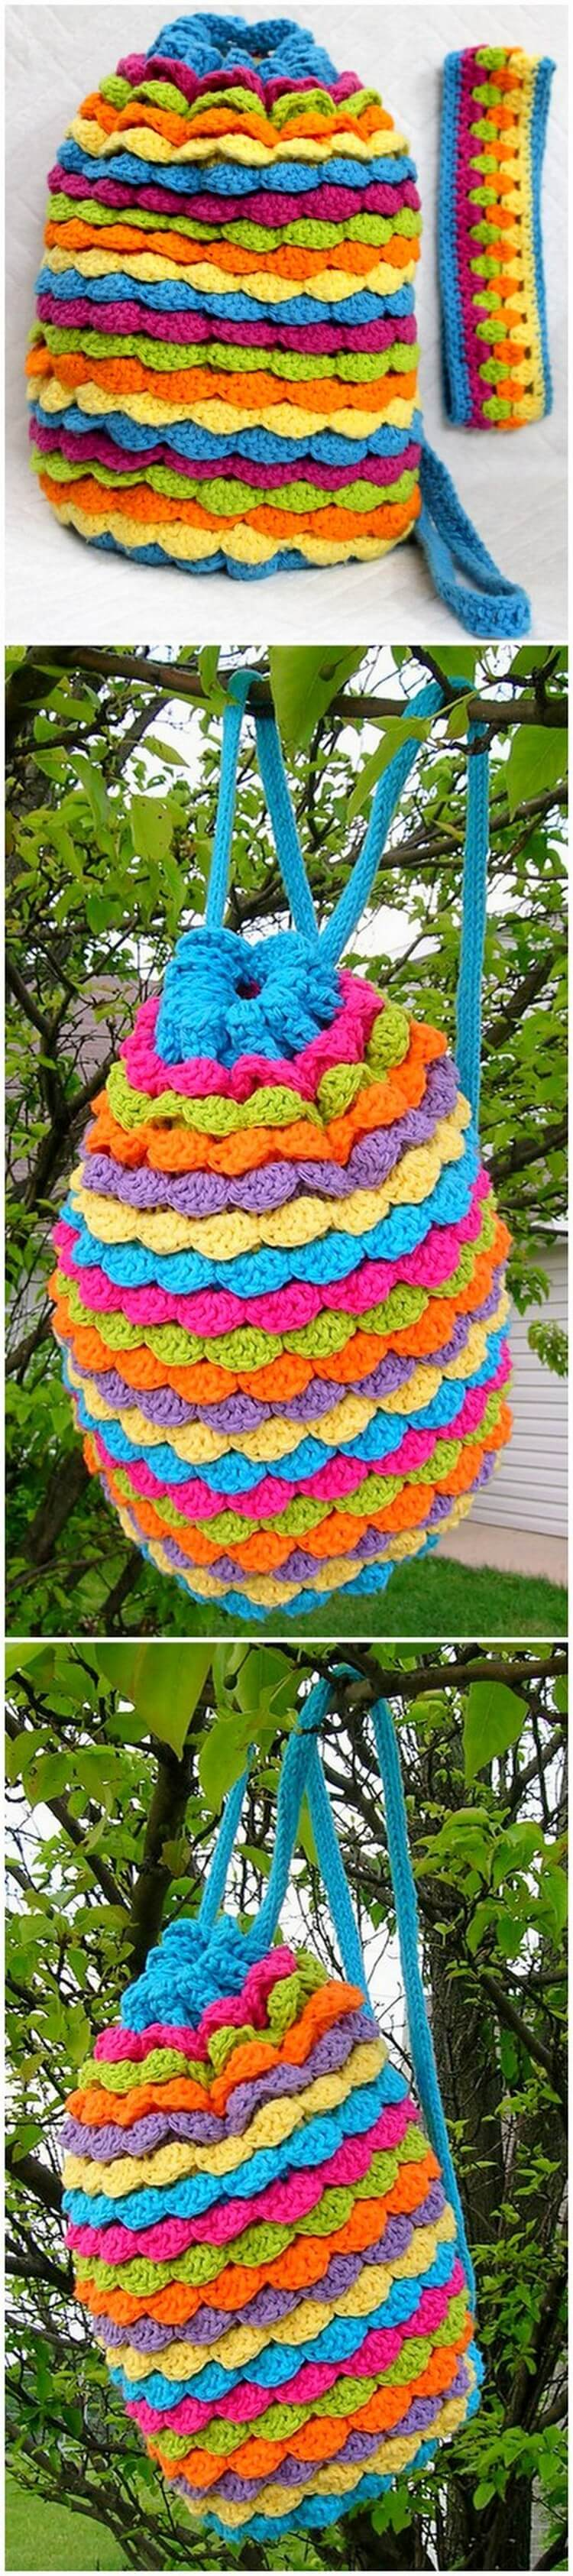 Crochet Backpack Pattern (61)